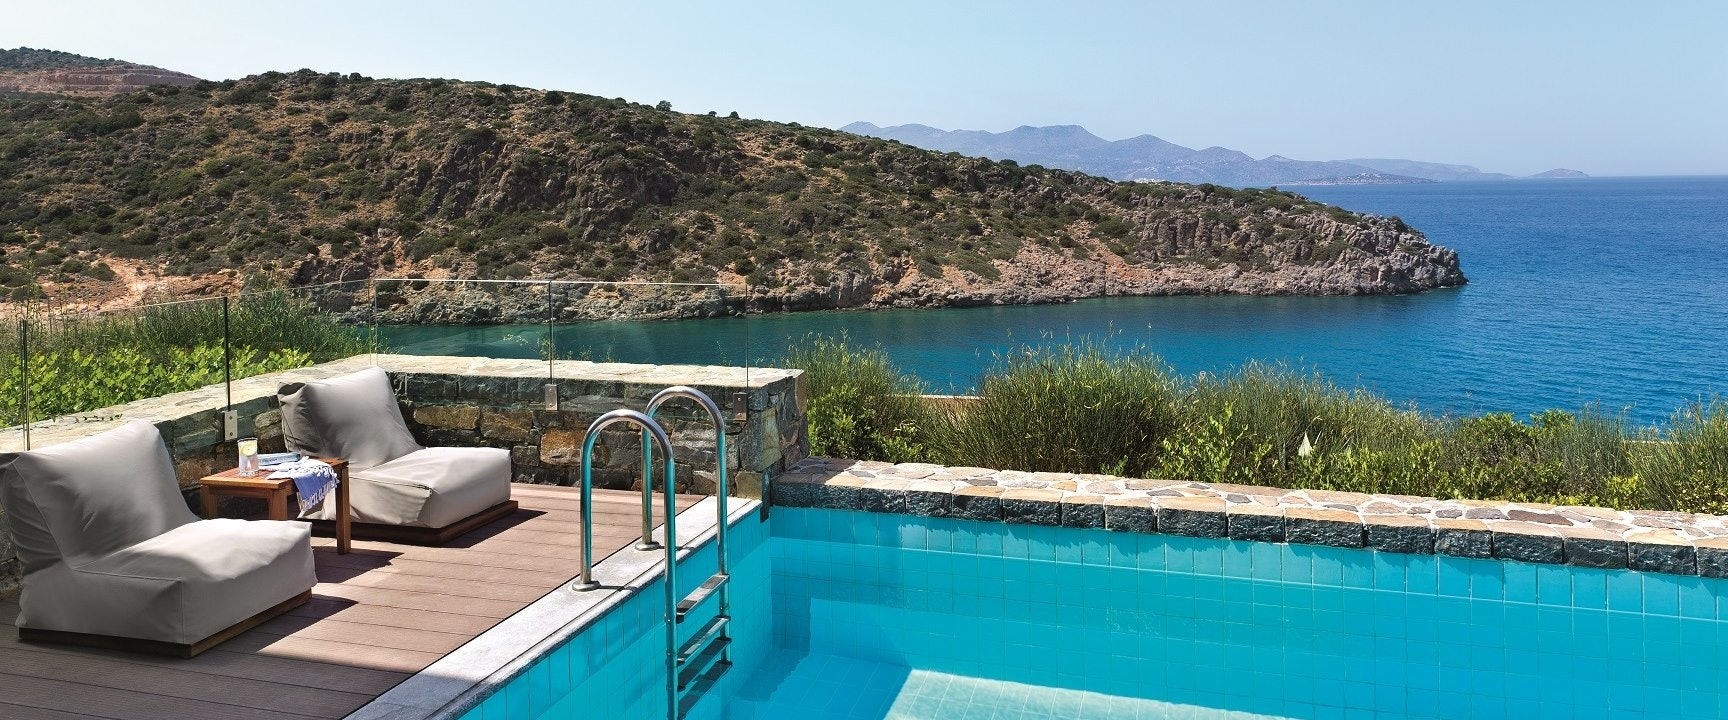 Daios Cove Greece Prices From 999 Per Person